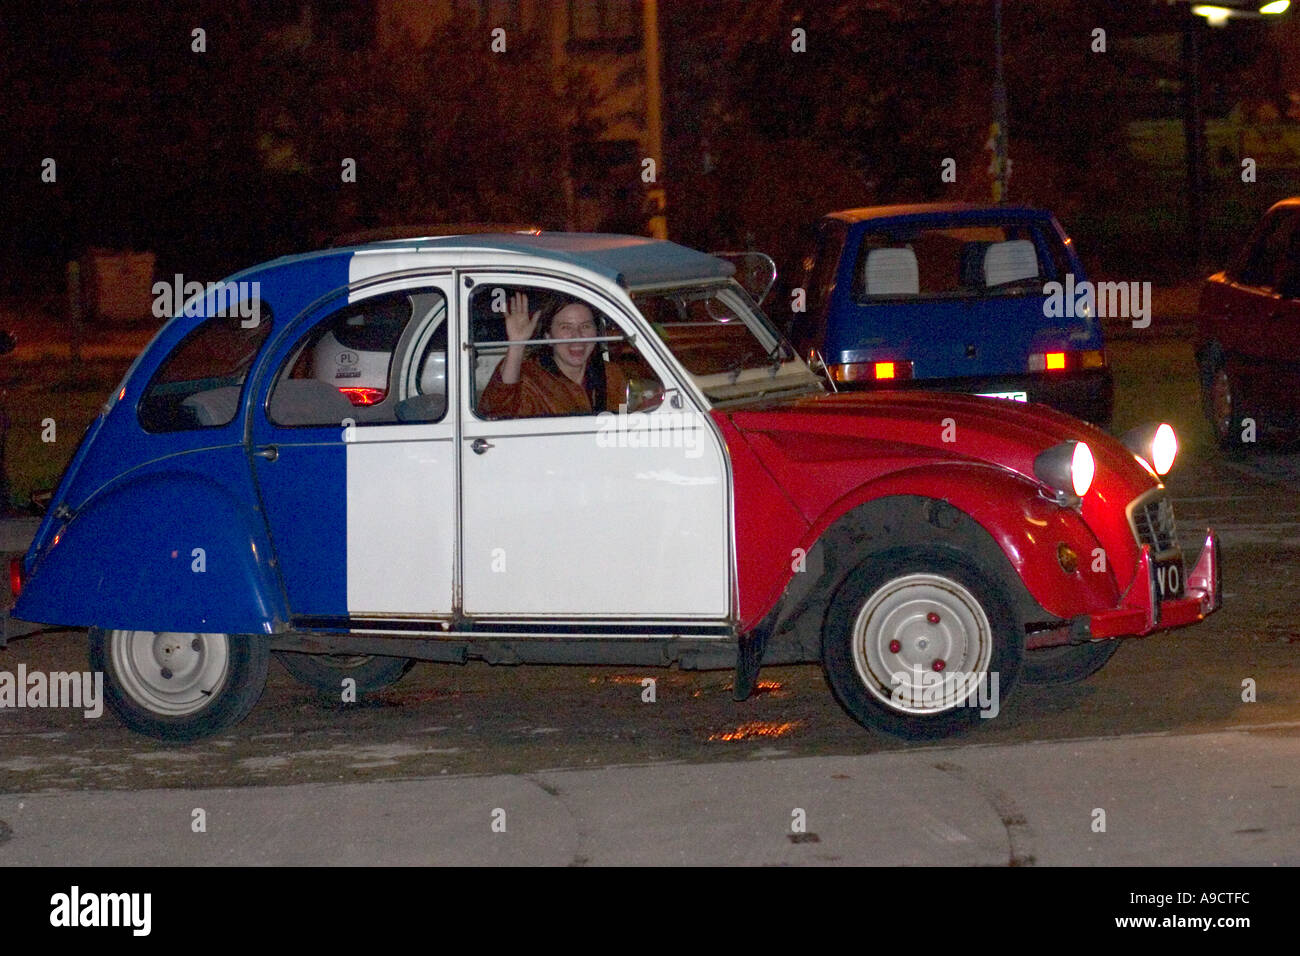 citroen 2cv or french deux chevaux auto red white and blue with woman stock photo 4024571 alamy. Black Bedroom Furniture Sets. Home Design Ideas